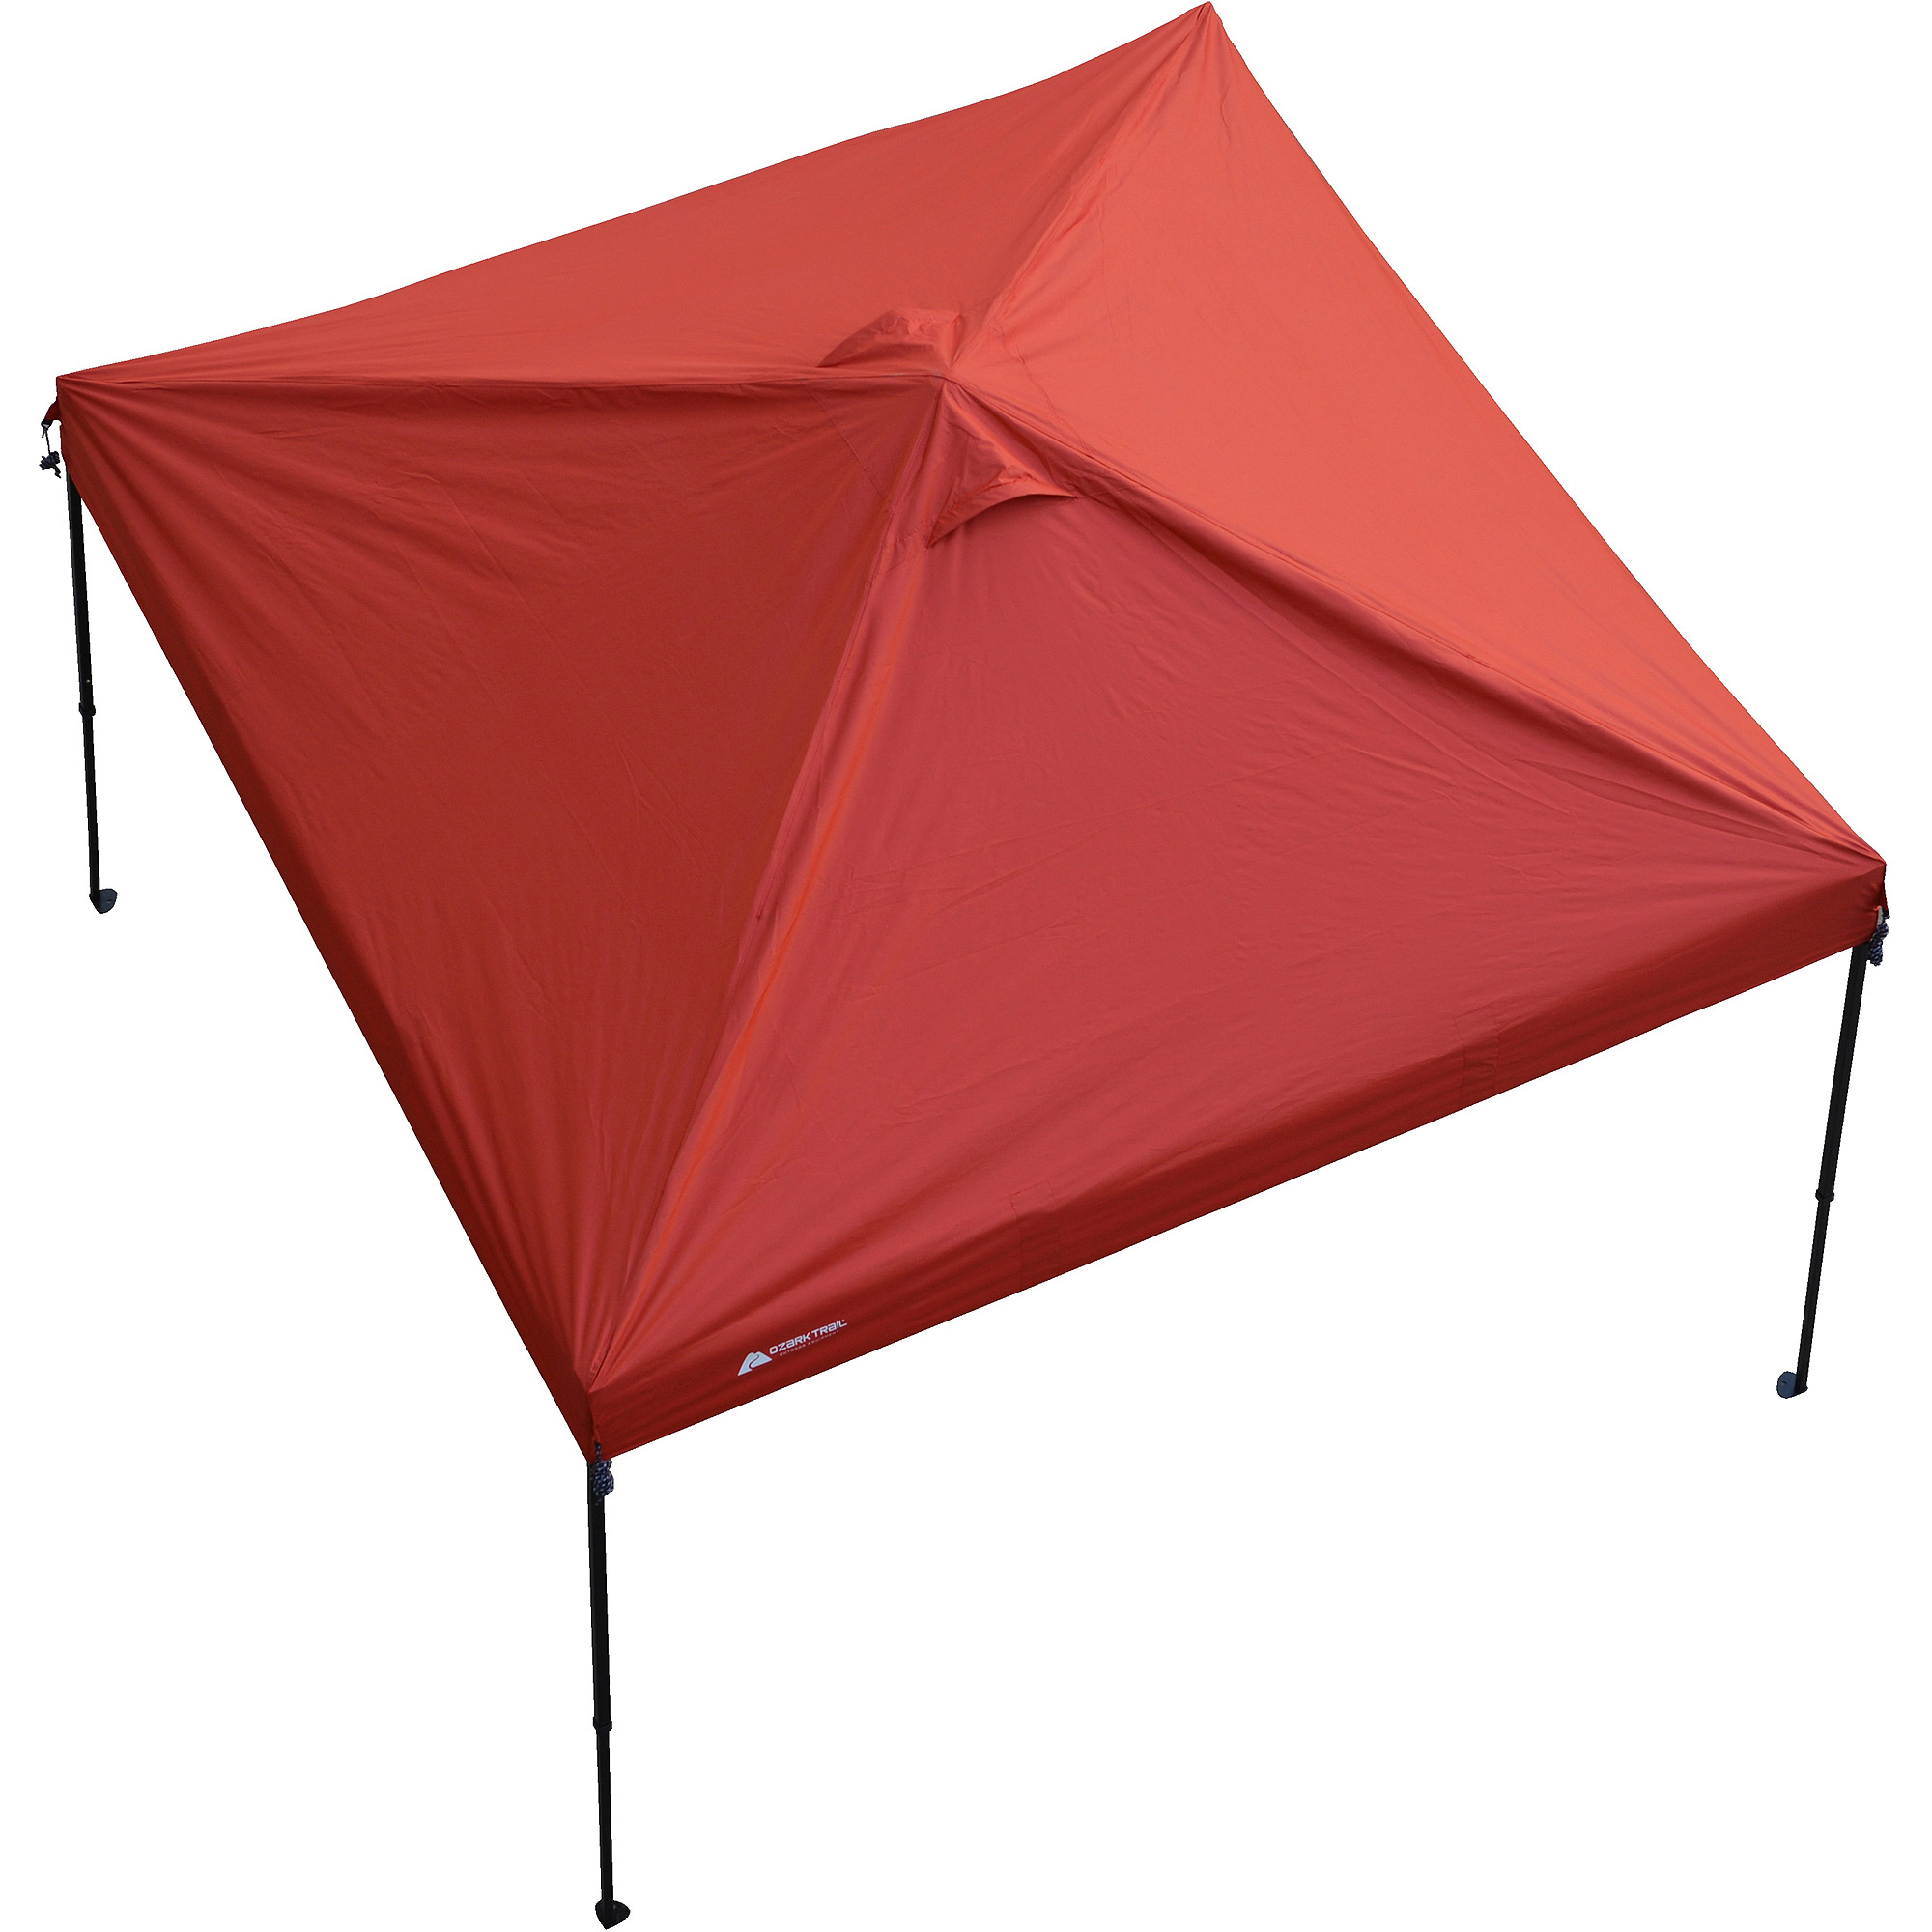 ozark trail 10 x 10 top replacement cover for outdoor canopy red